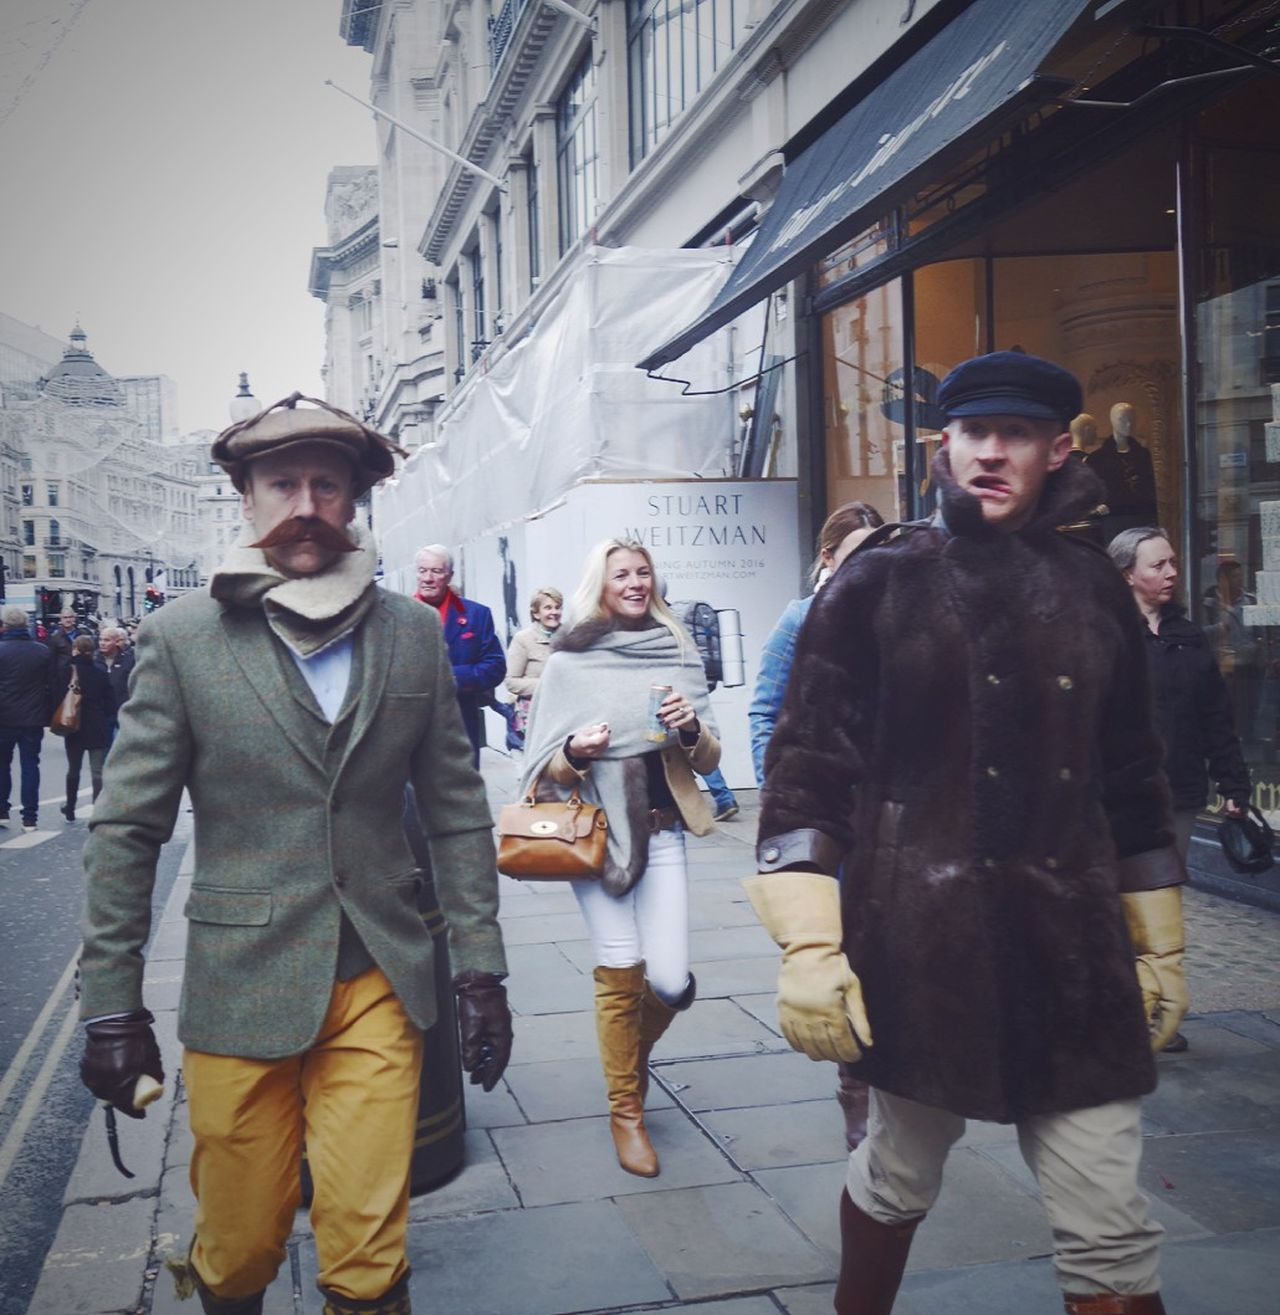 Street Photography People Photography London Lifestyle London Street Photography EyeEm Gallery Vintage Style Vintage Fashion Vintage Clothes United Kingdom LONDON❤ City Life People On The Street Traditional Clothing Real People Classic Style People London Lifestyle